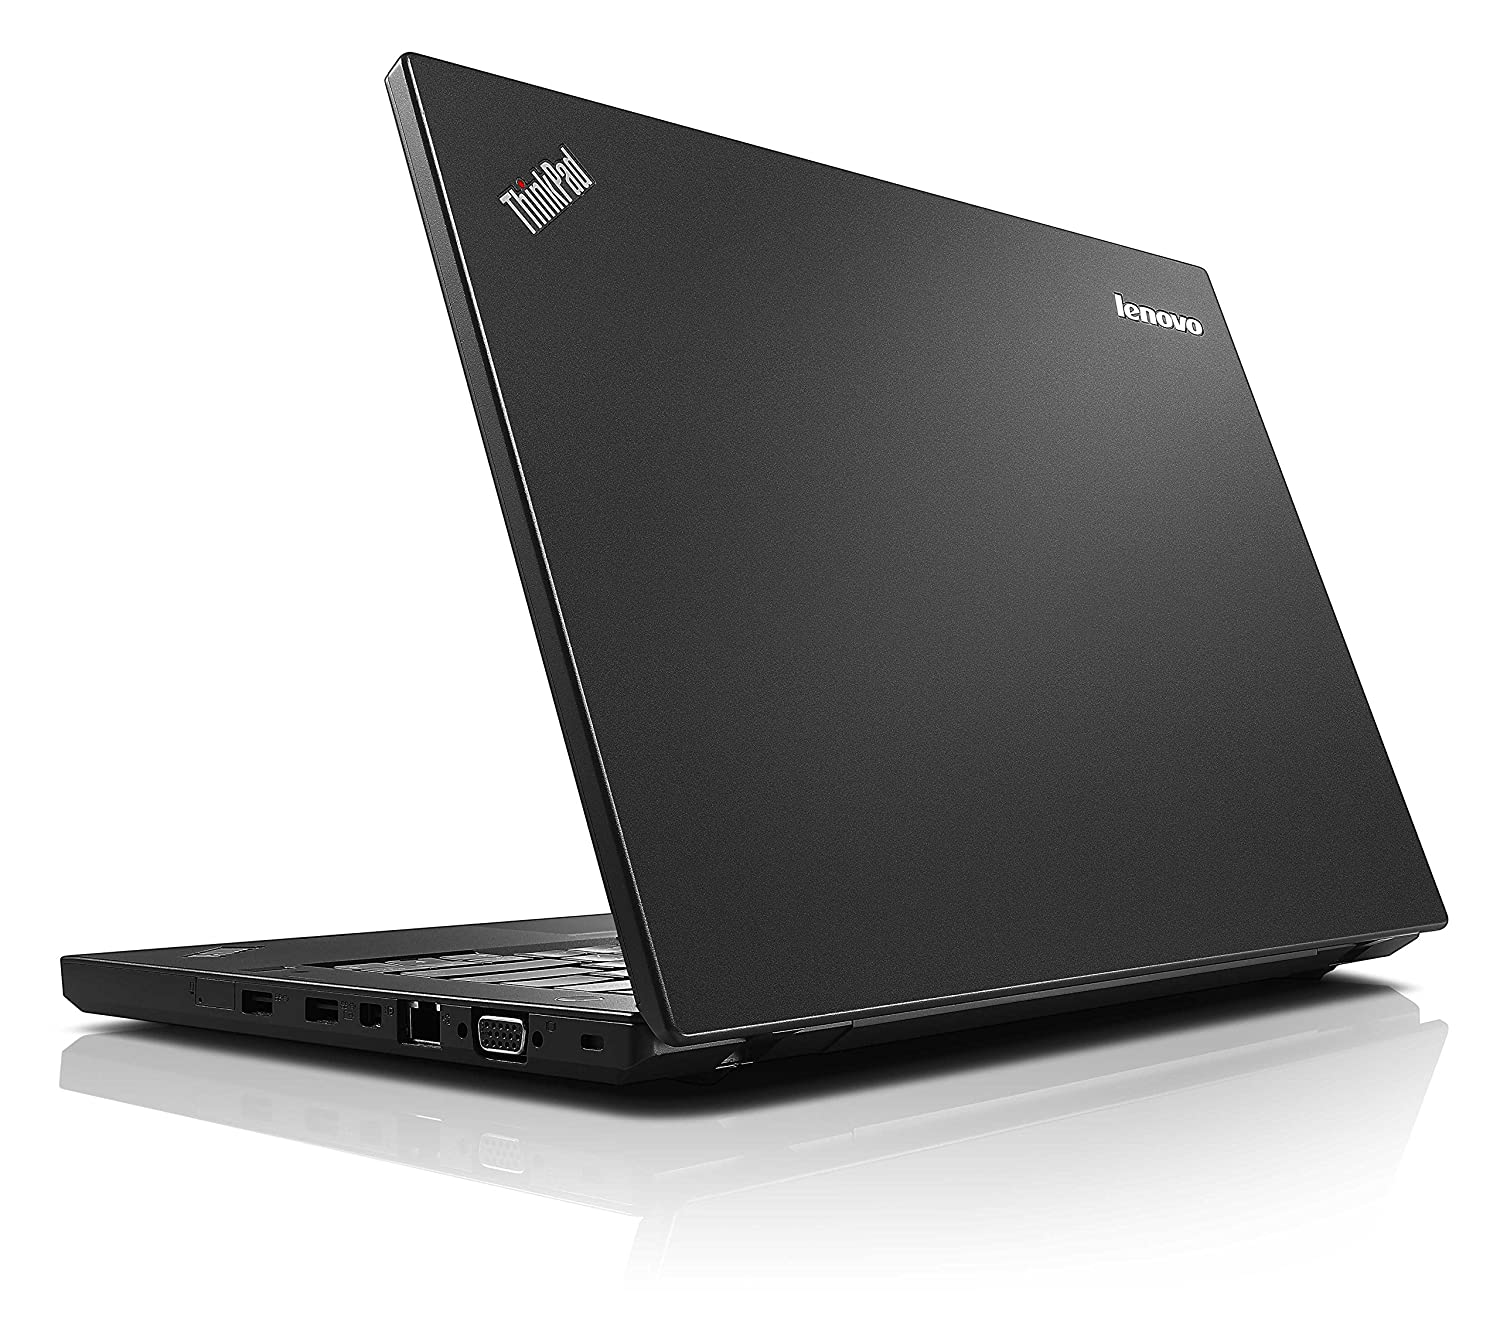 Lenovo ThinkPad T450 Laptop